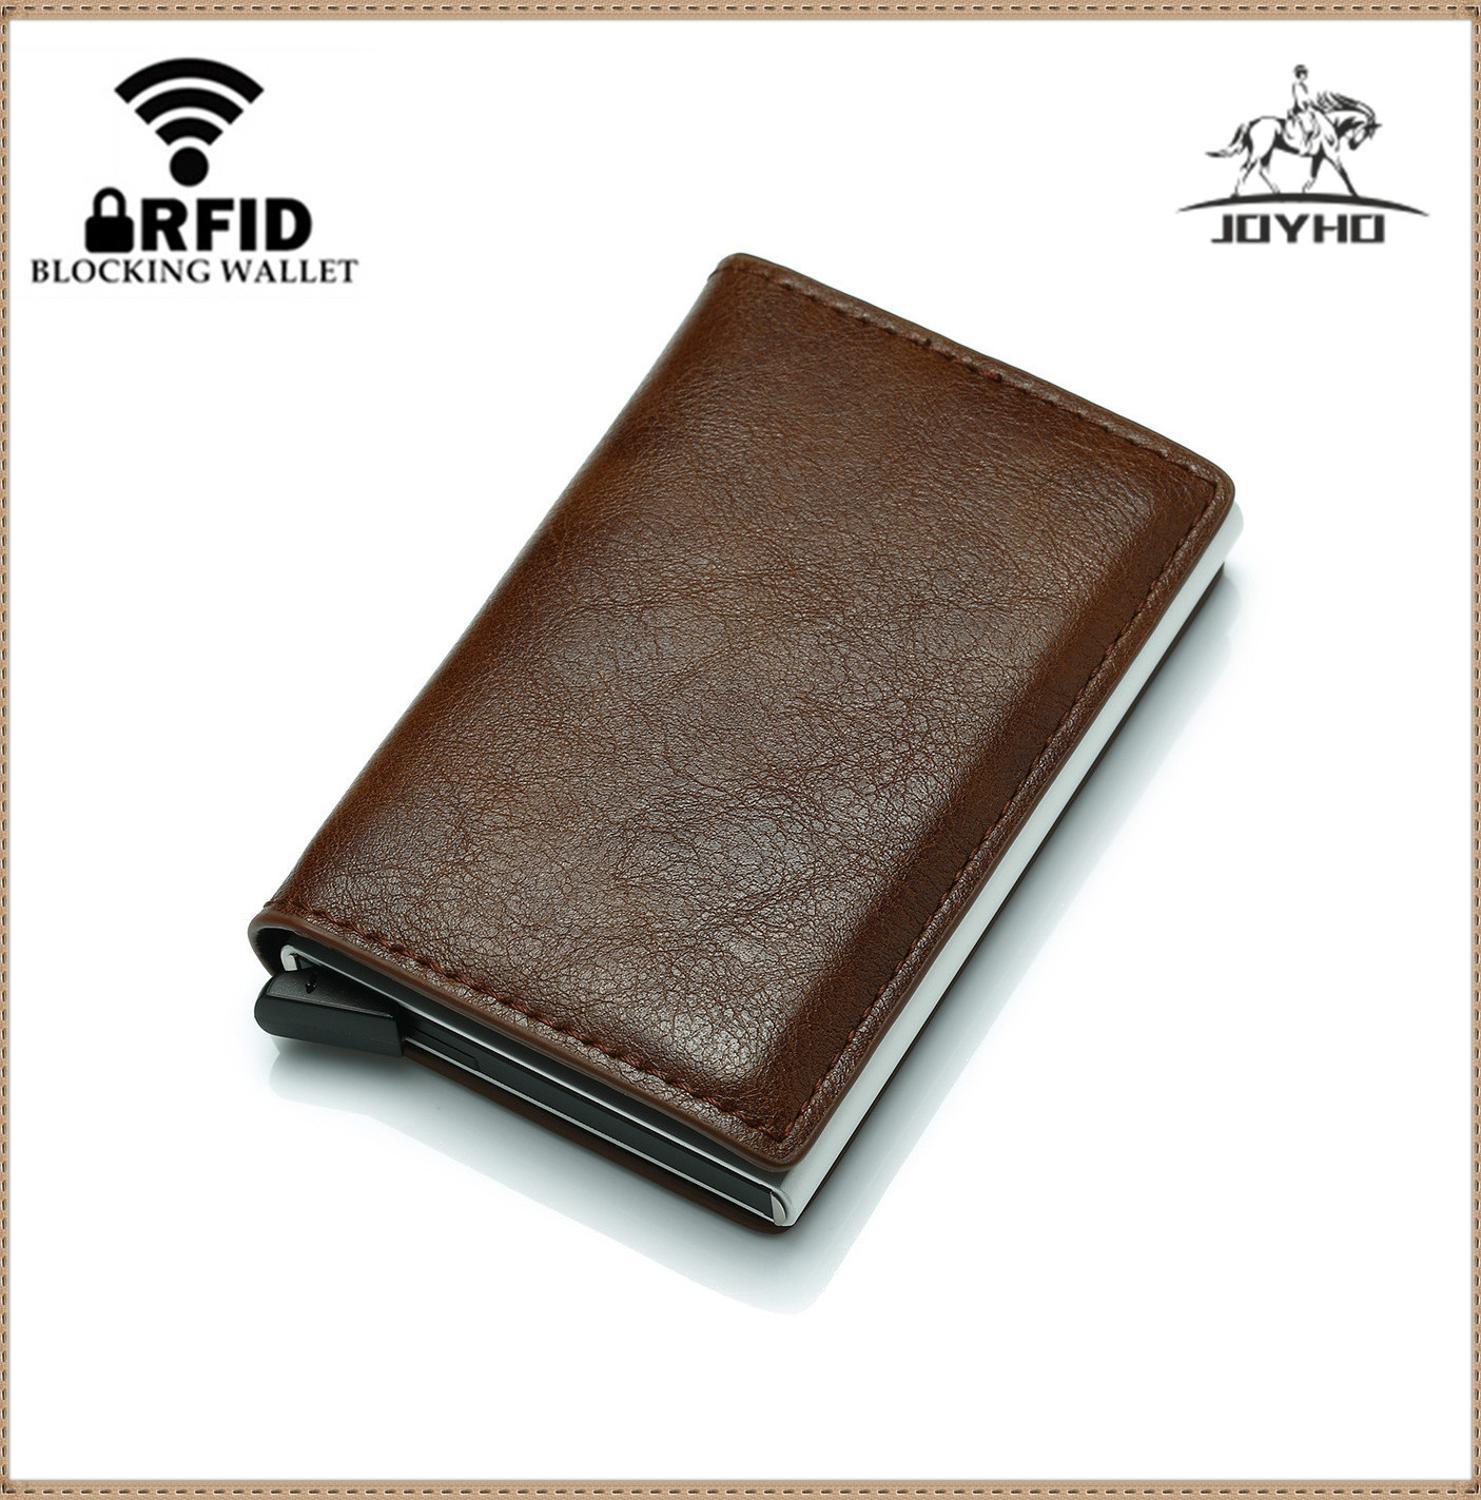 Aluminium Rfid Wallet Card Holder Coin Purse Men's Wallet Slim Small Male Leather Wallet Mini Pocket Money Bag Women Card Wallet title=